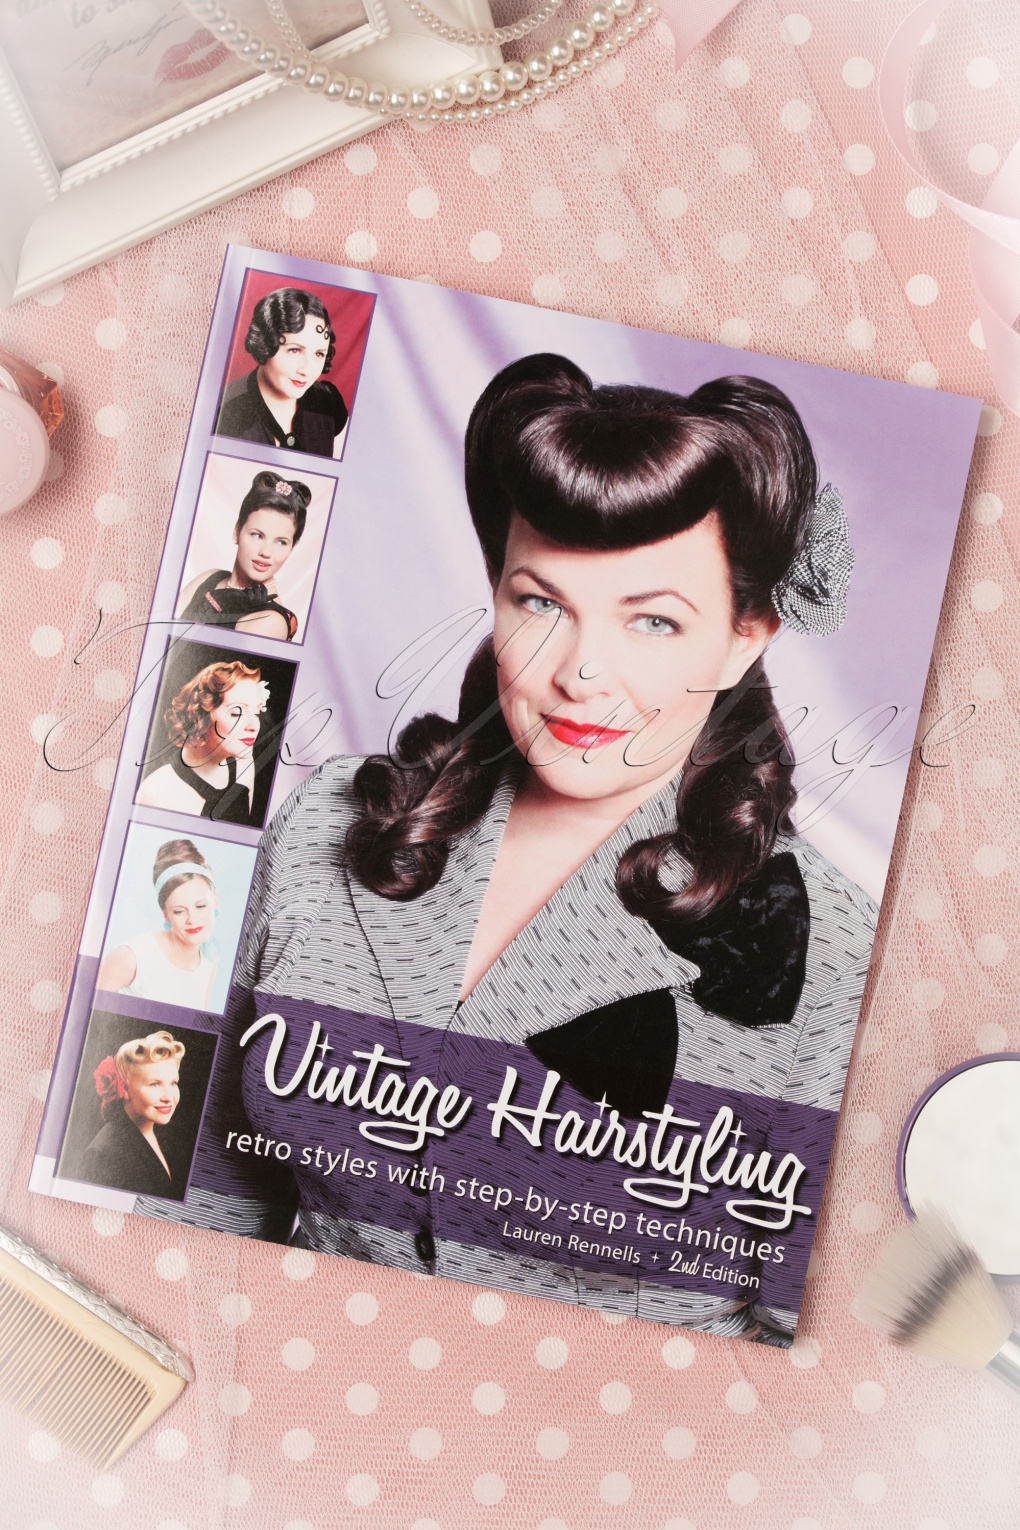 How to do Vintage Style Makeup : 1920s, 1930s, 1940s, 1950s Vintage Hairstyling Retro Styles With Step by Step Techniques 2nd edition �30.57 AT vintagedancer.com